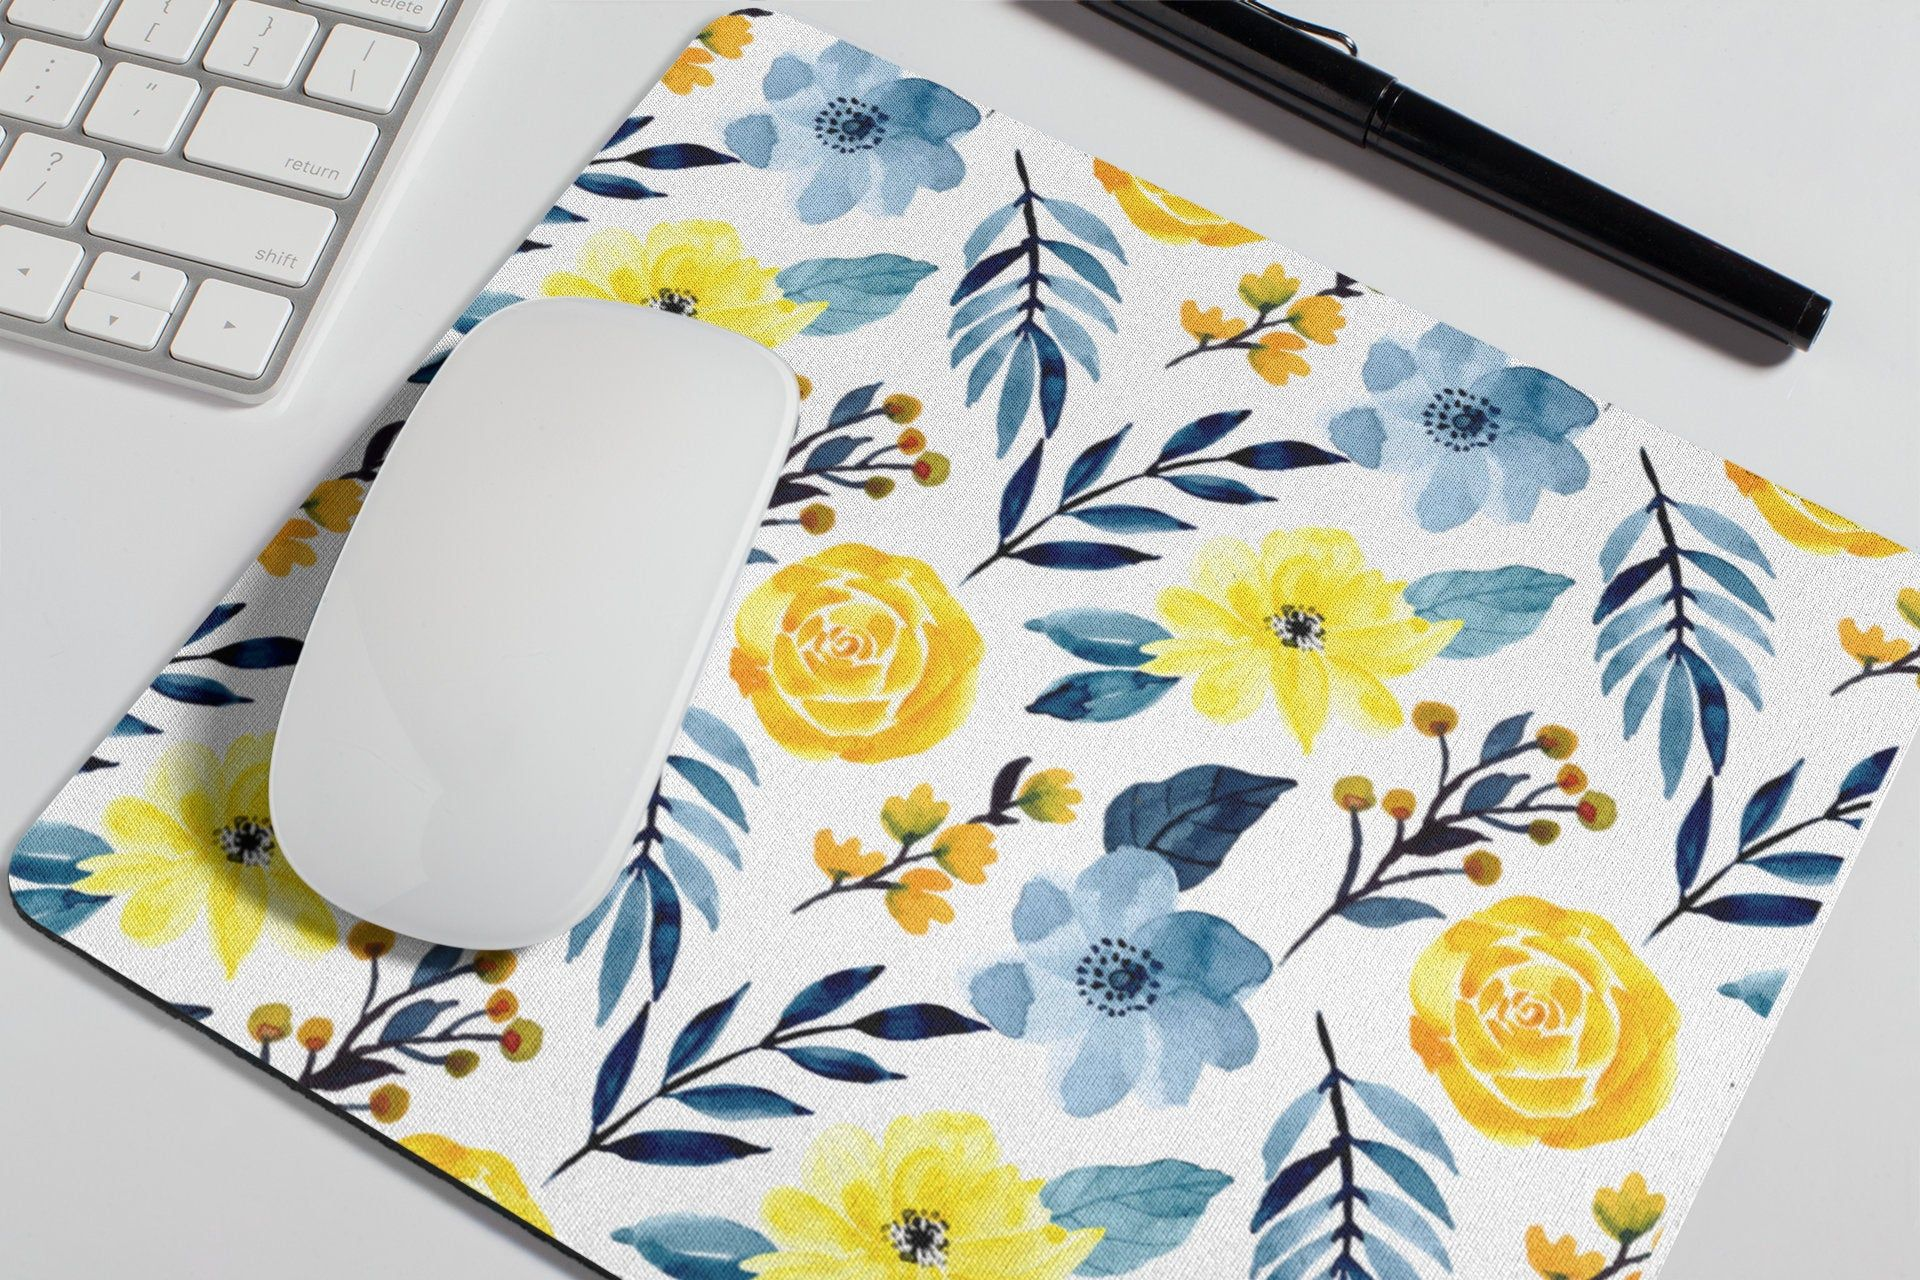 Desk Accessories For Women Mouse Pad for Women Office Decor For Women Cute Desk Accessories Mouse Pad